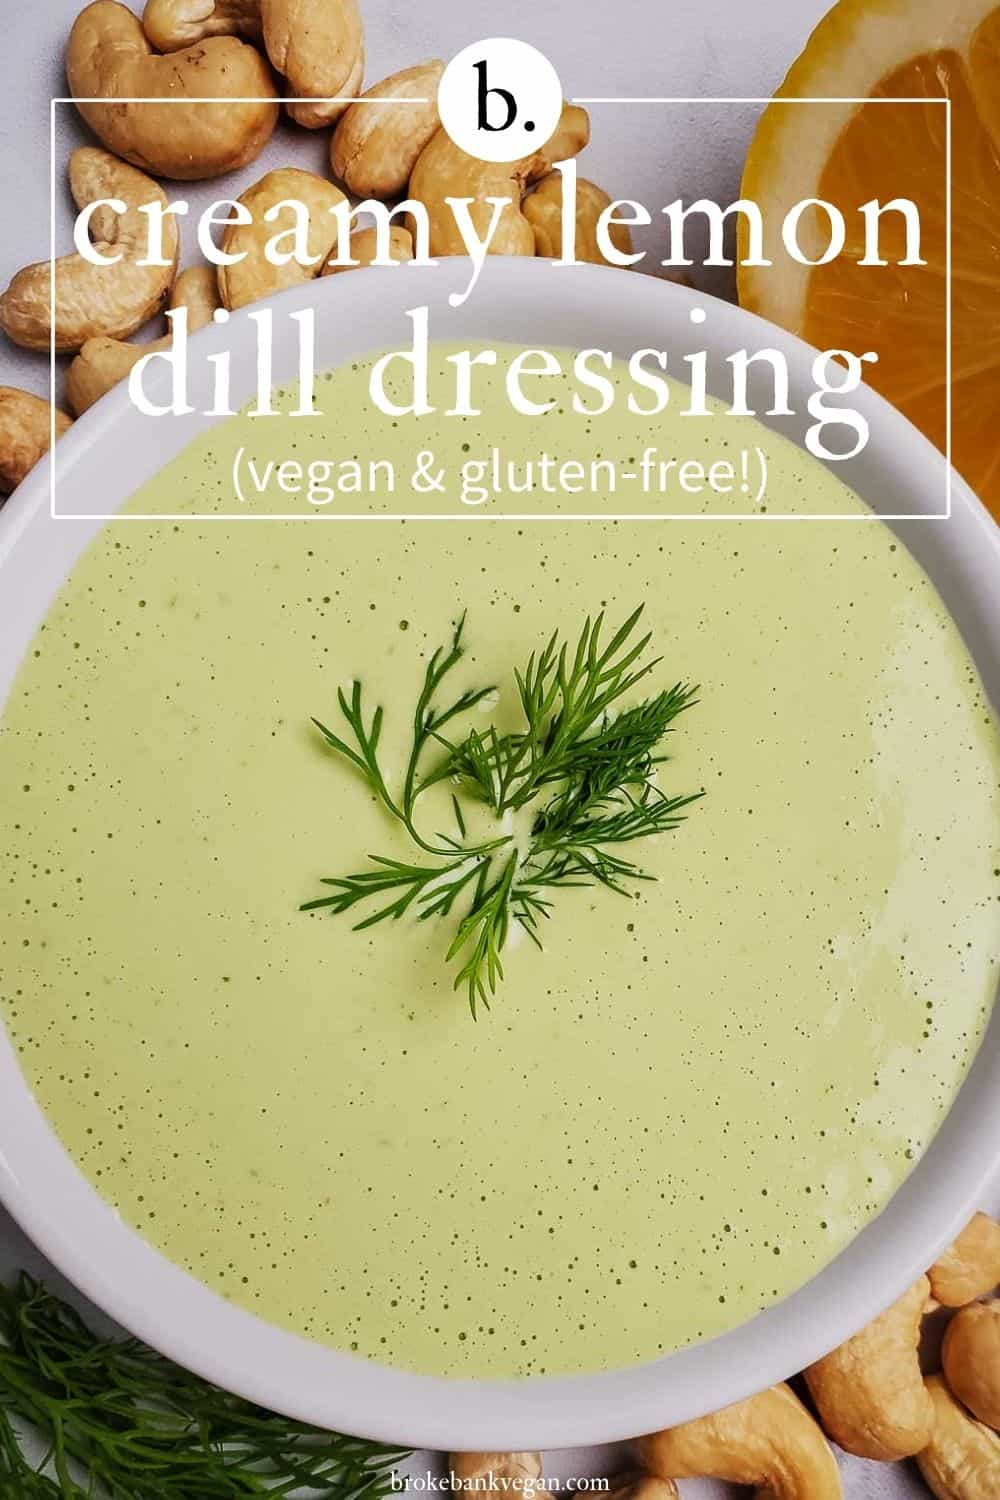 Creamy Lemon Dill Dressing